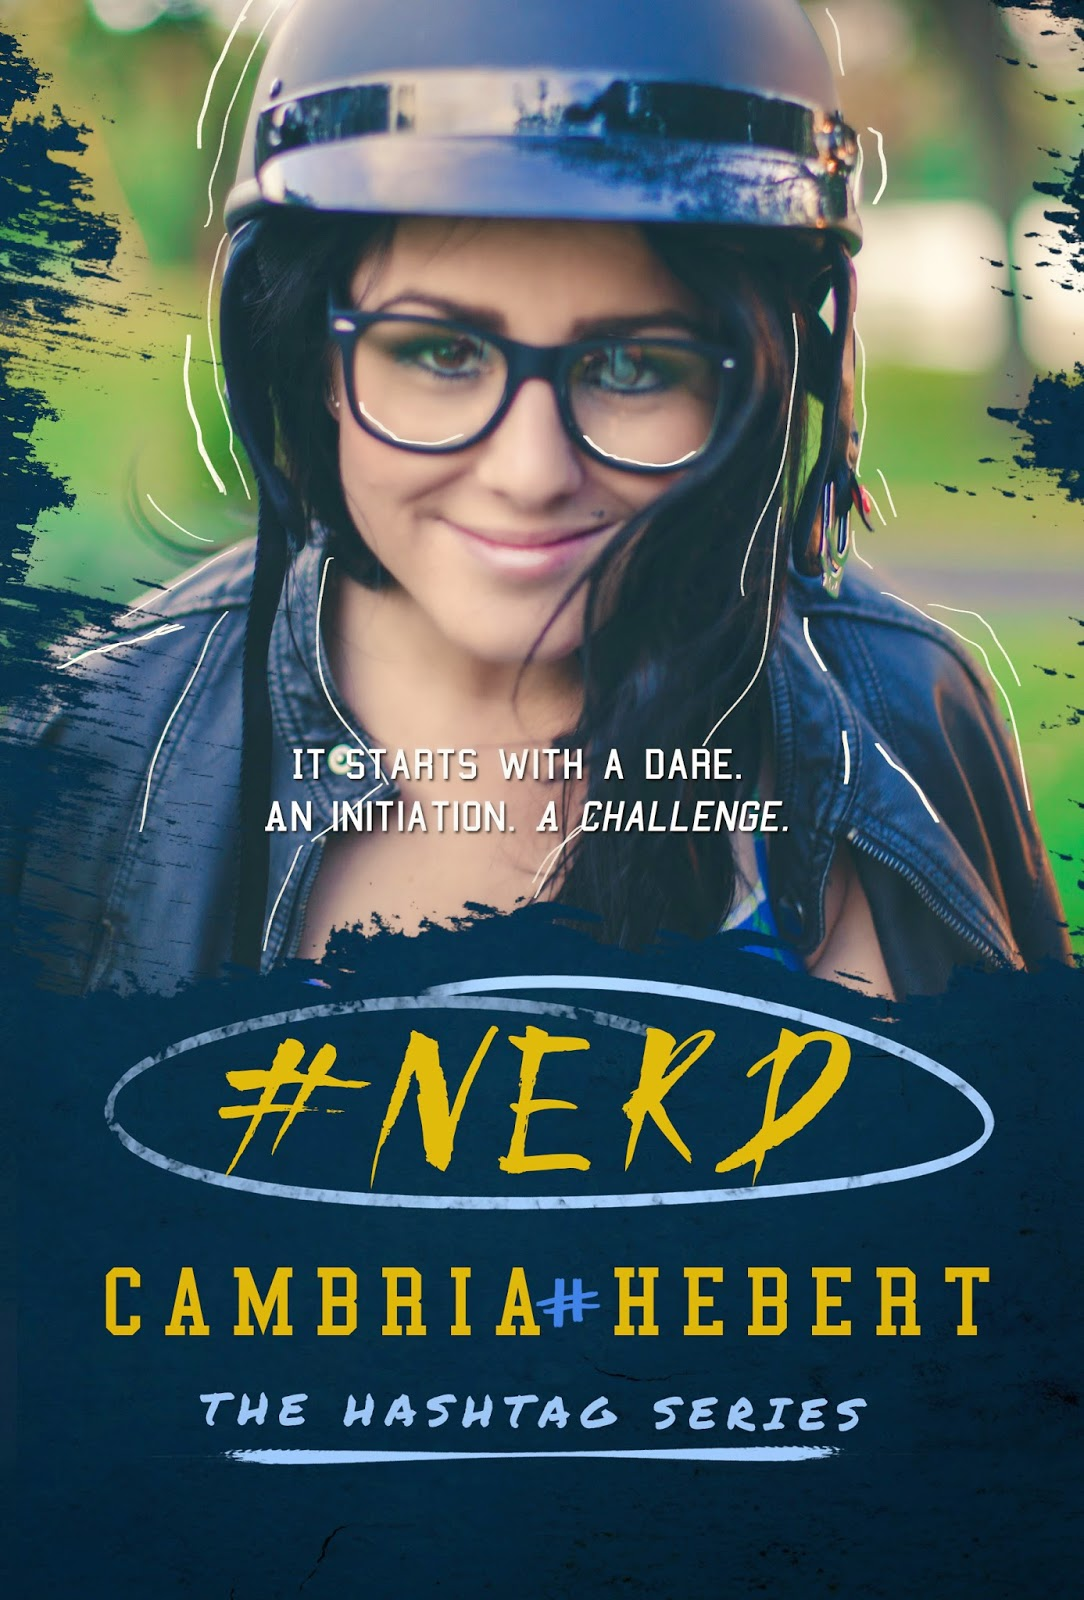 http://clevergirlsread.blogspot.com/2014/11/blog-tour-review-giveaway-nerd-hashtag.html